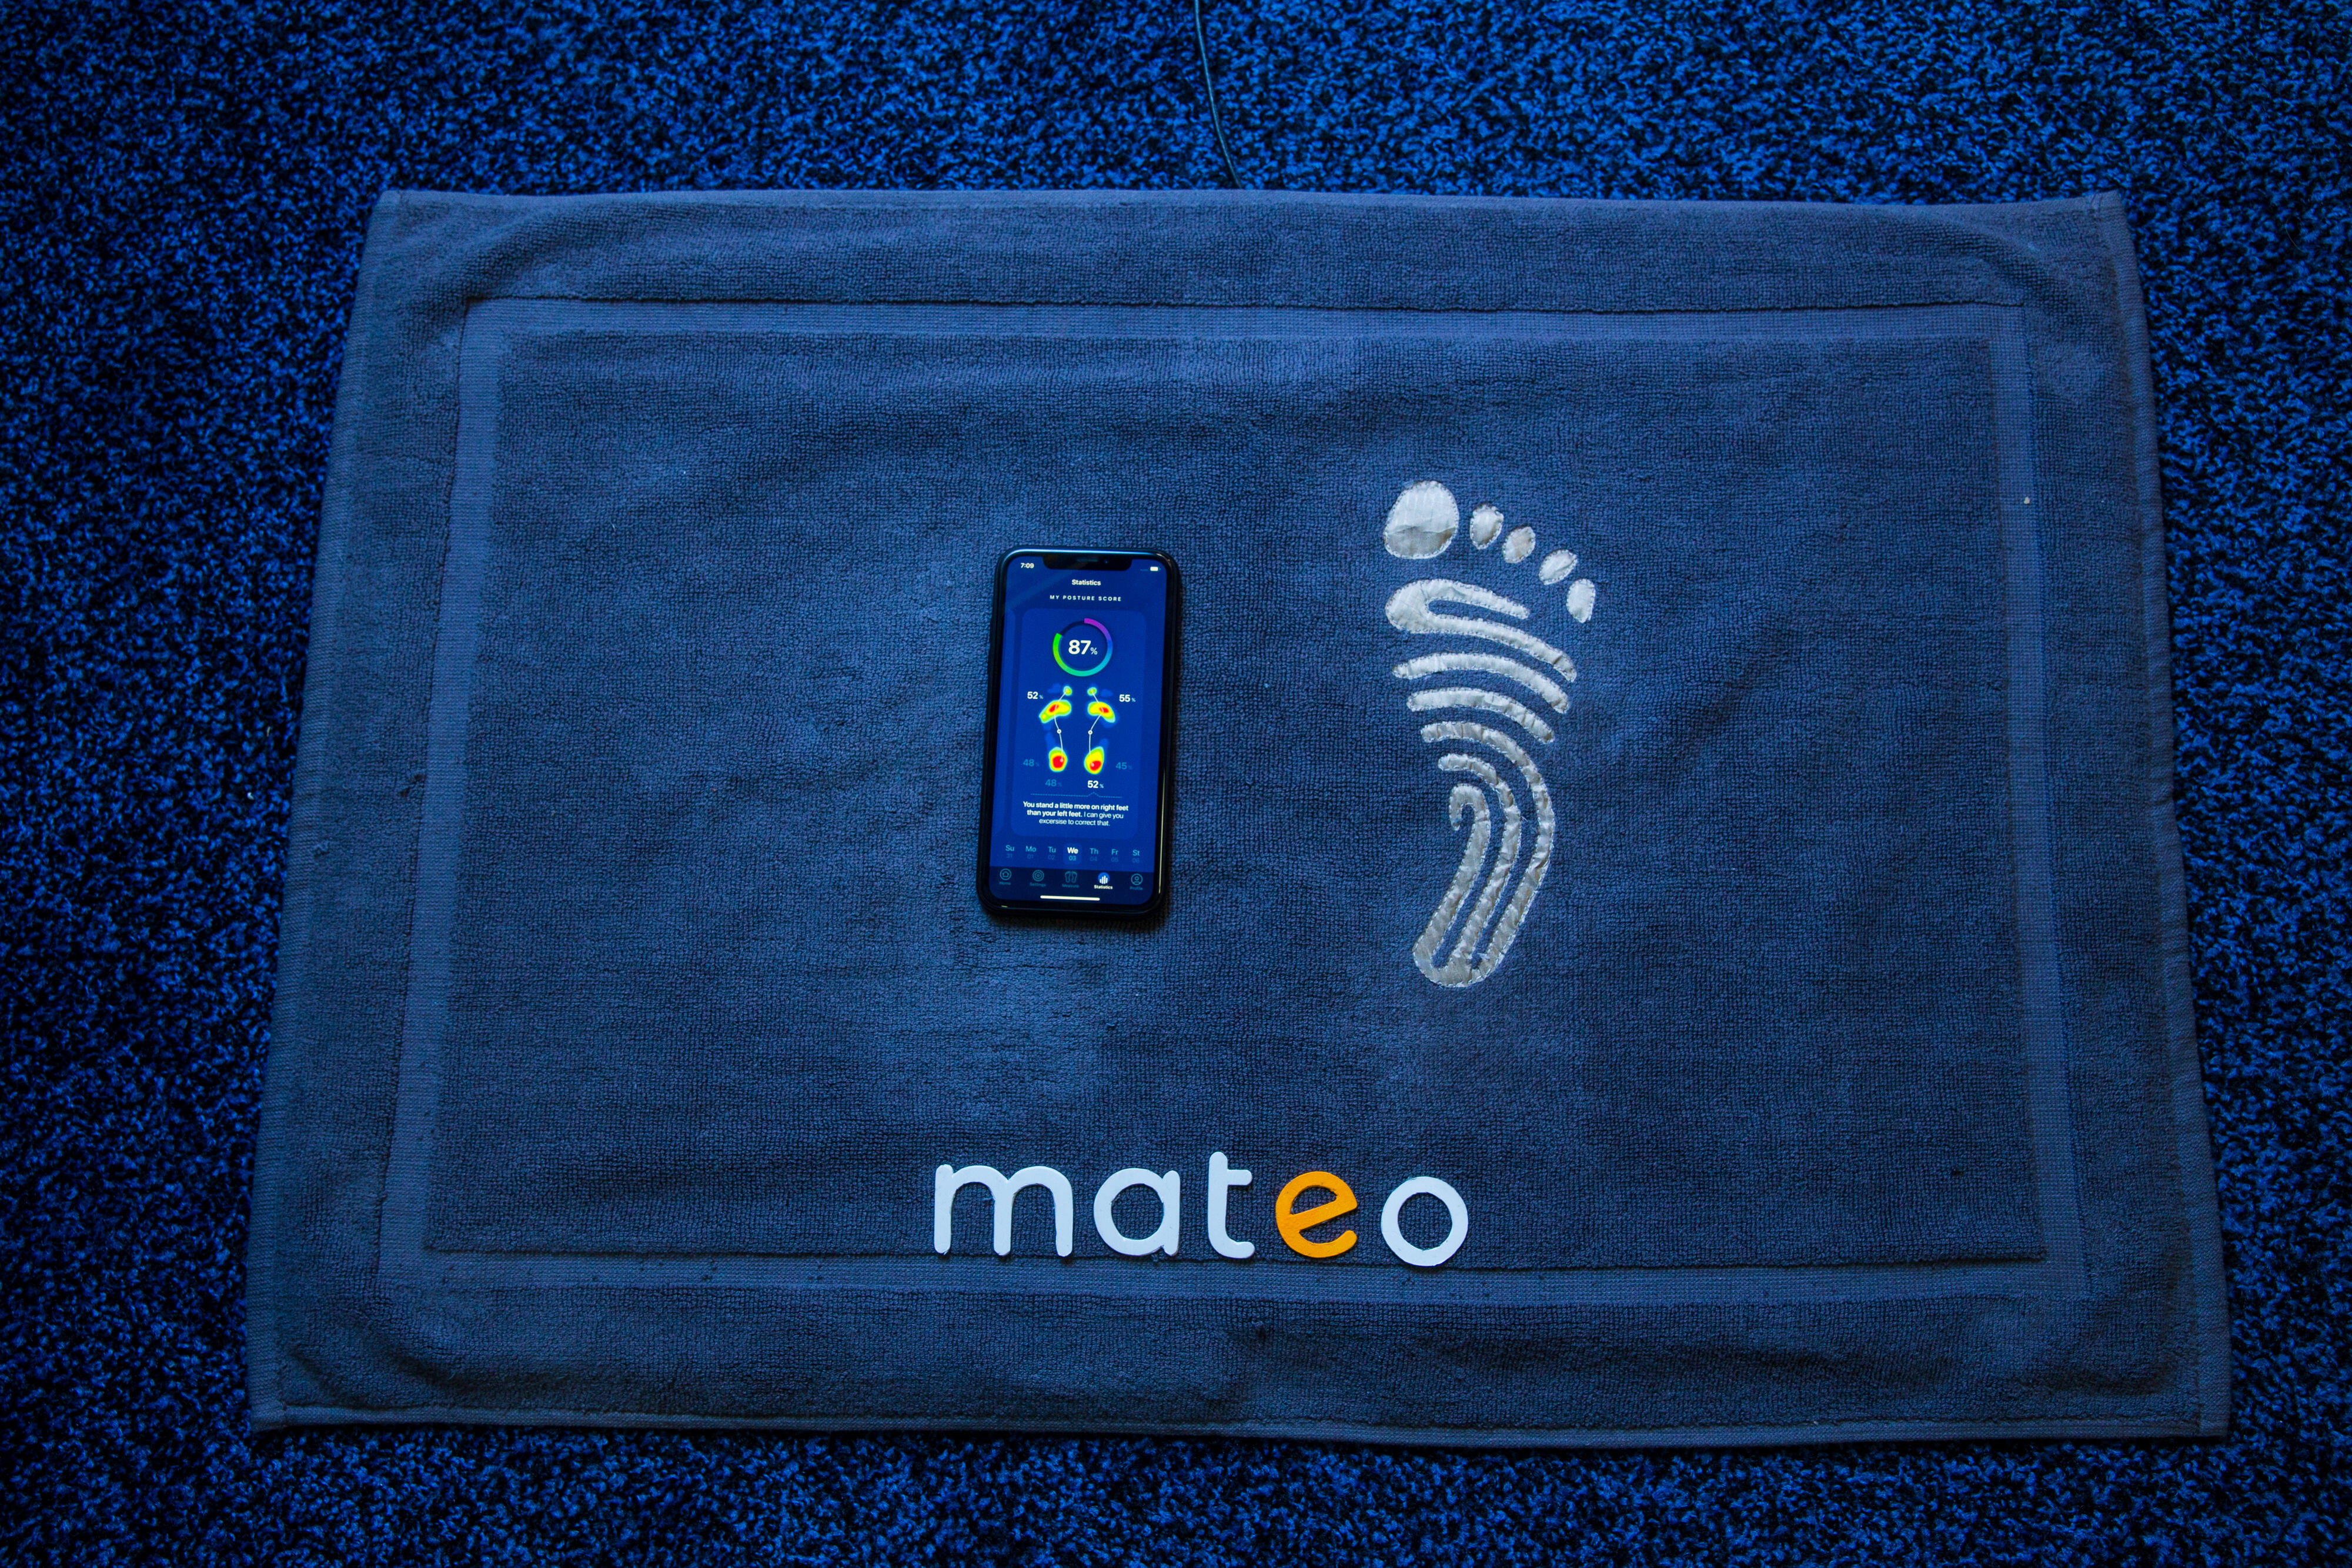 Mateo Smart Bathmat